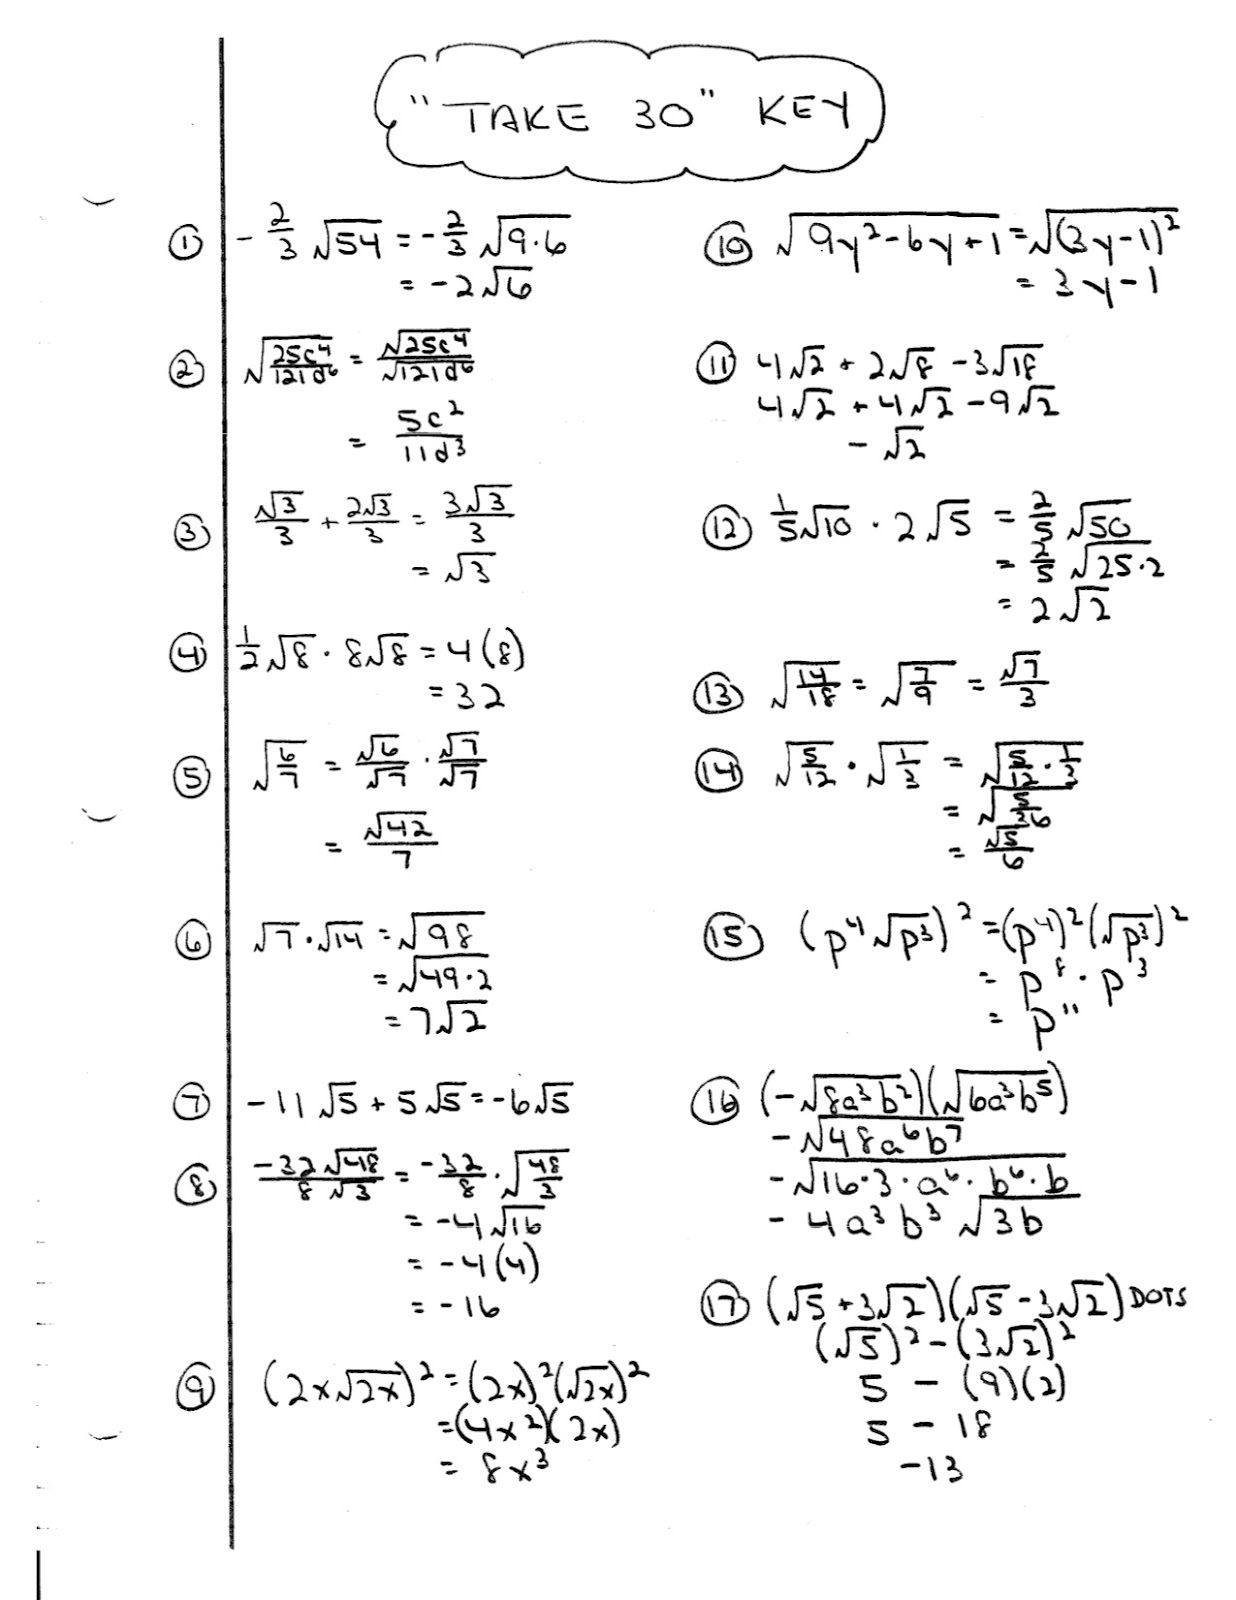 Iroquois Algebra Blog Unit 10 Take 30 Worksheet Answer Key